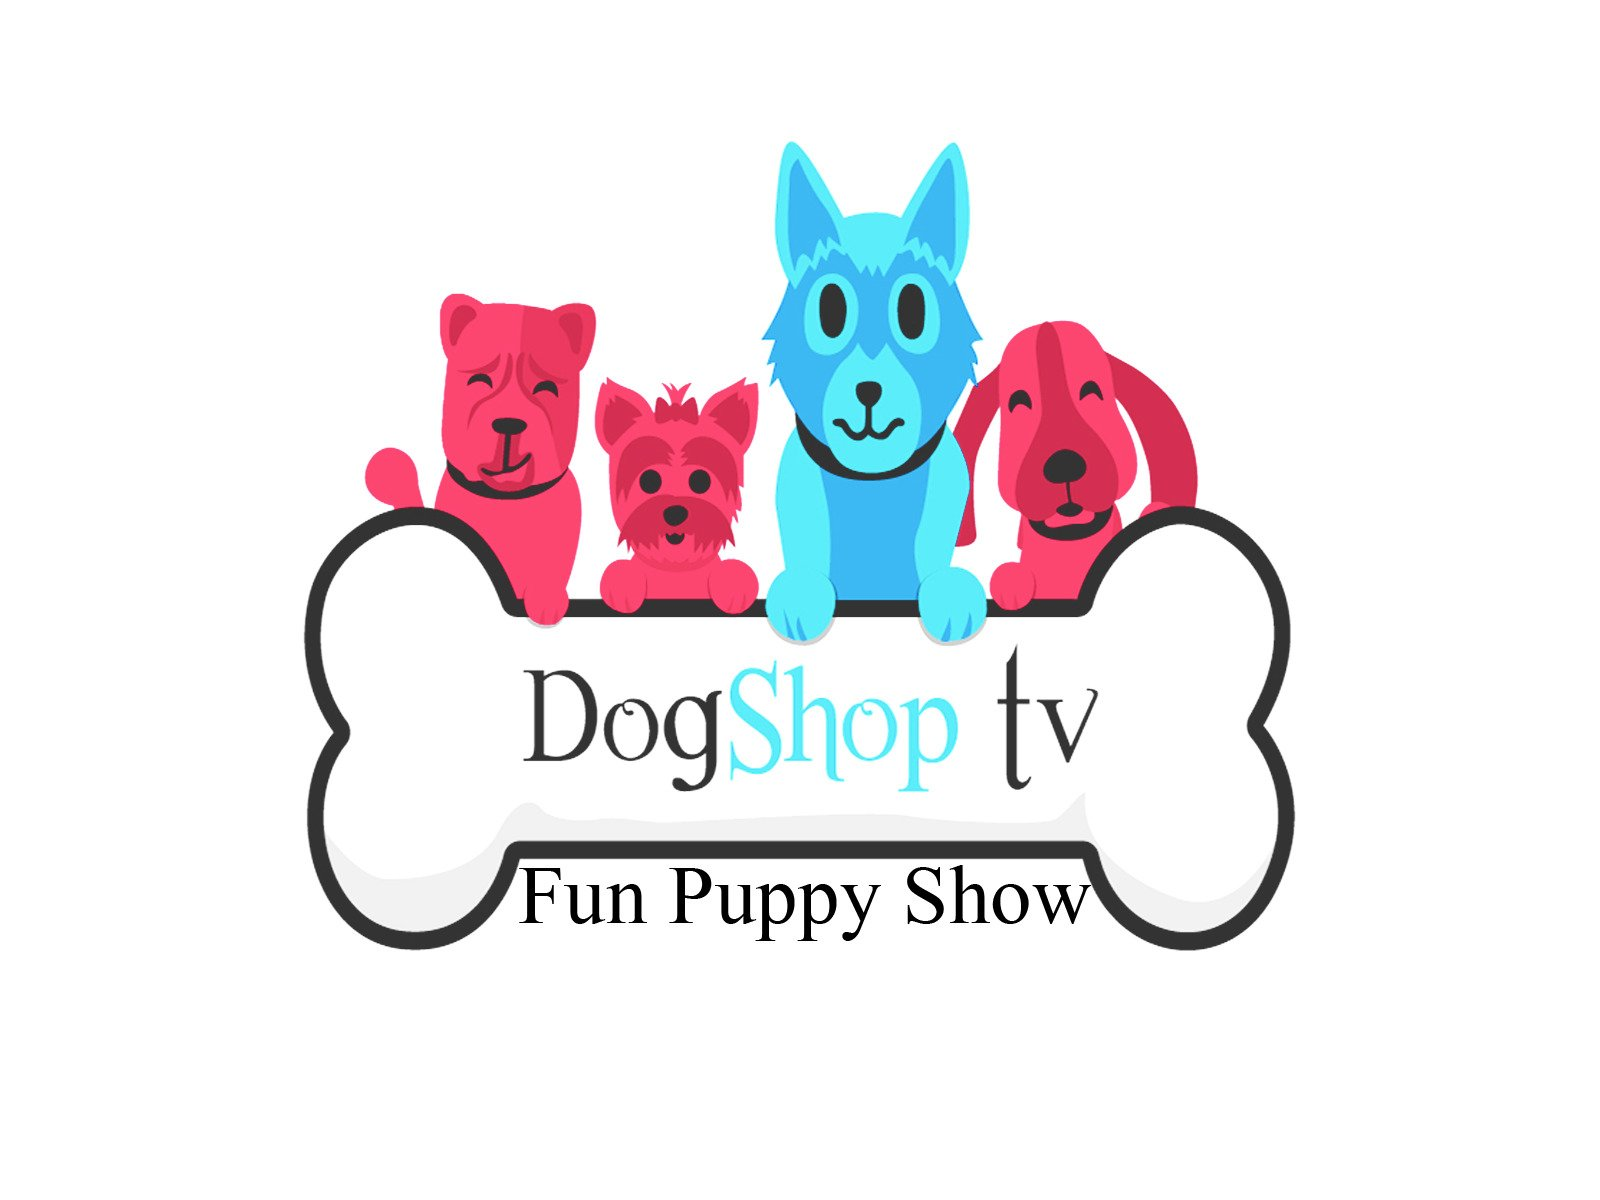 Dog Shop TV: Fun Puppy Show